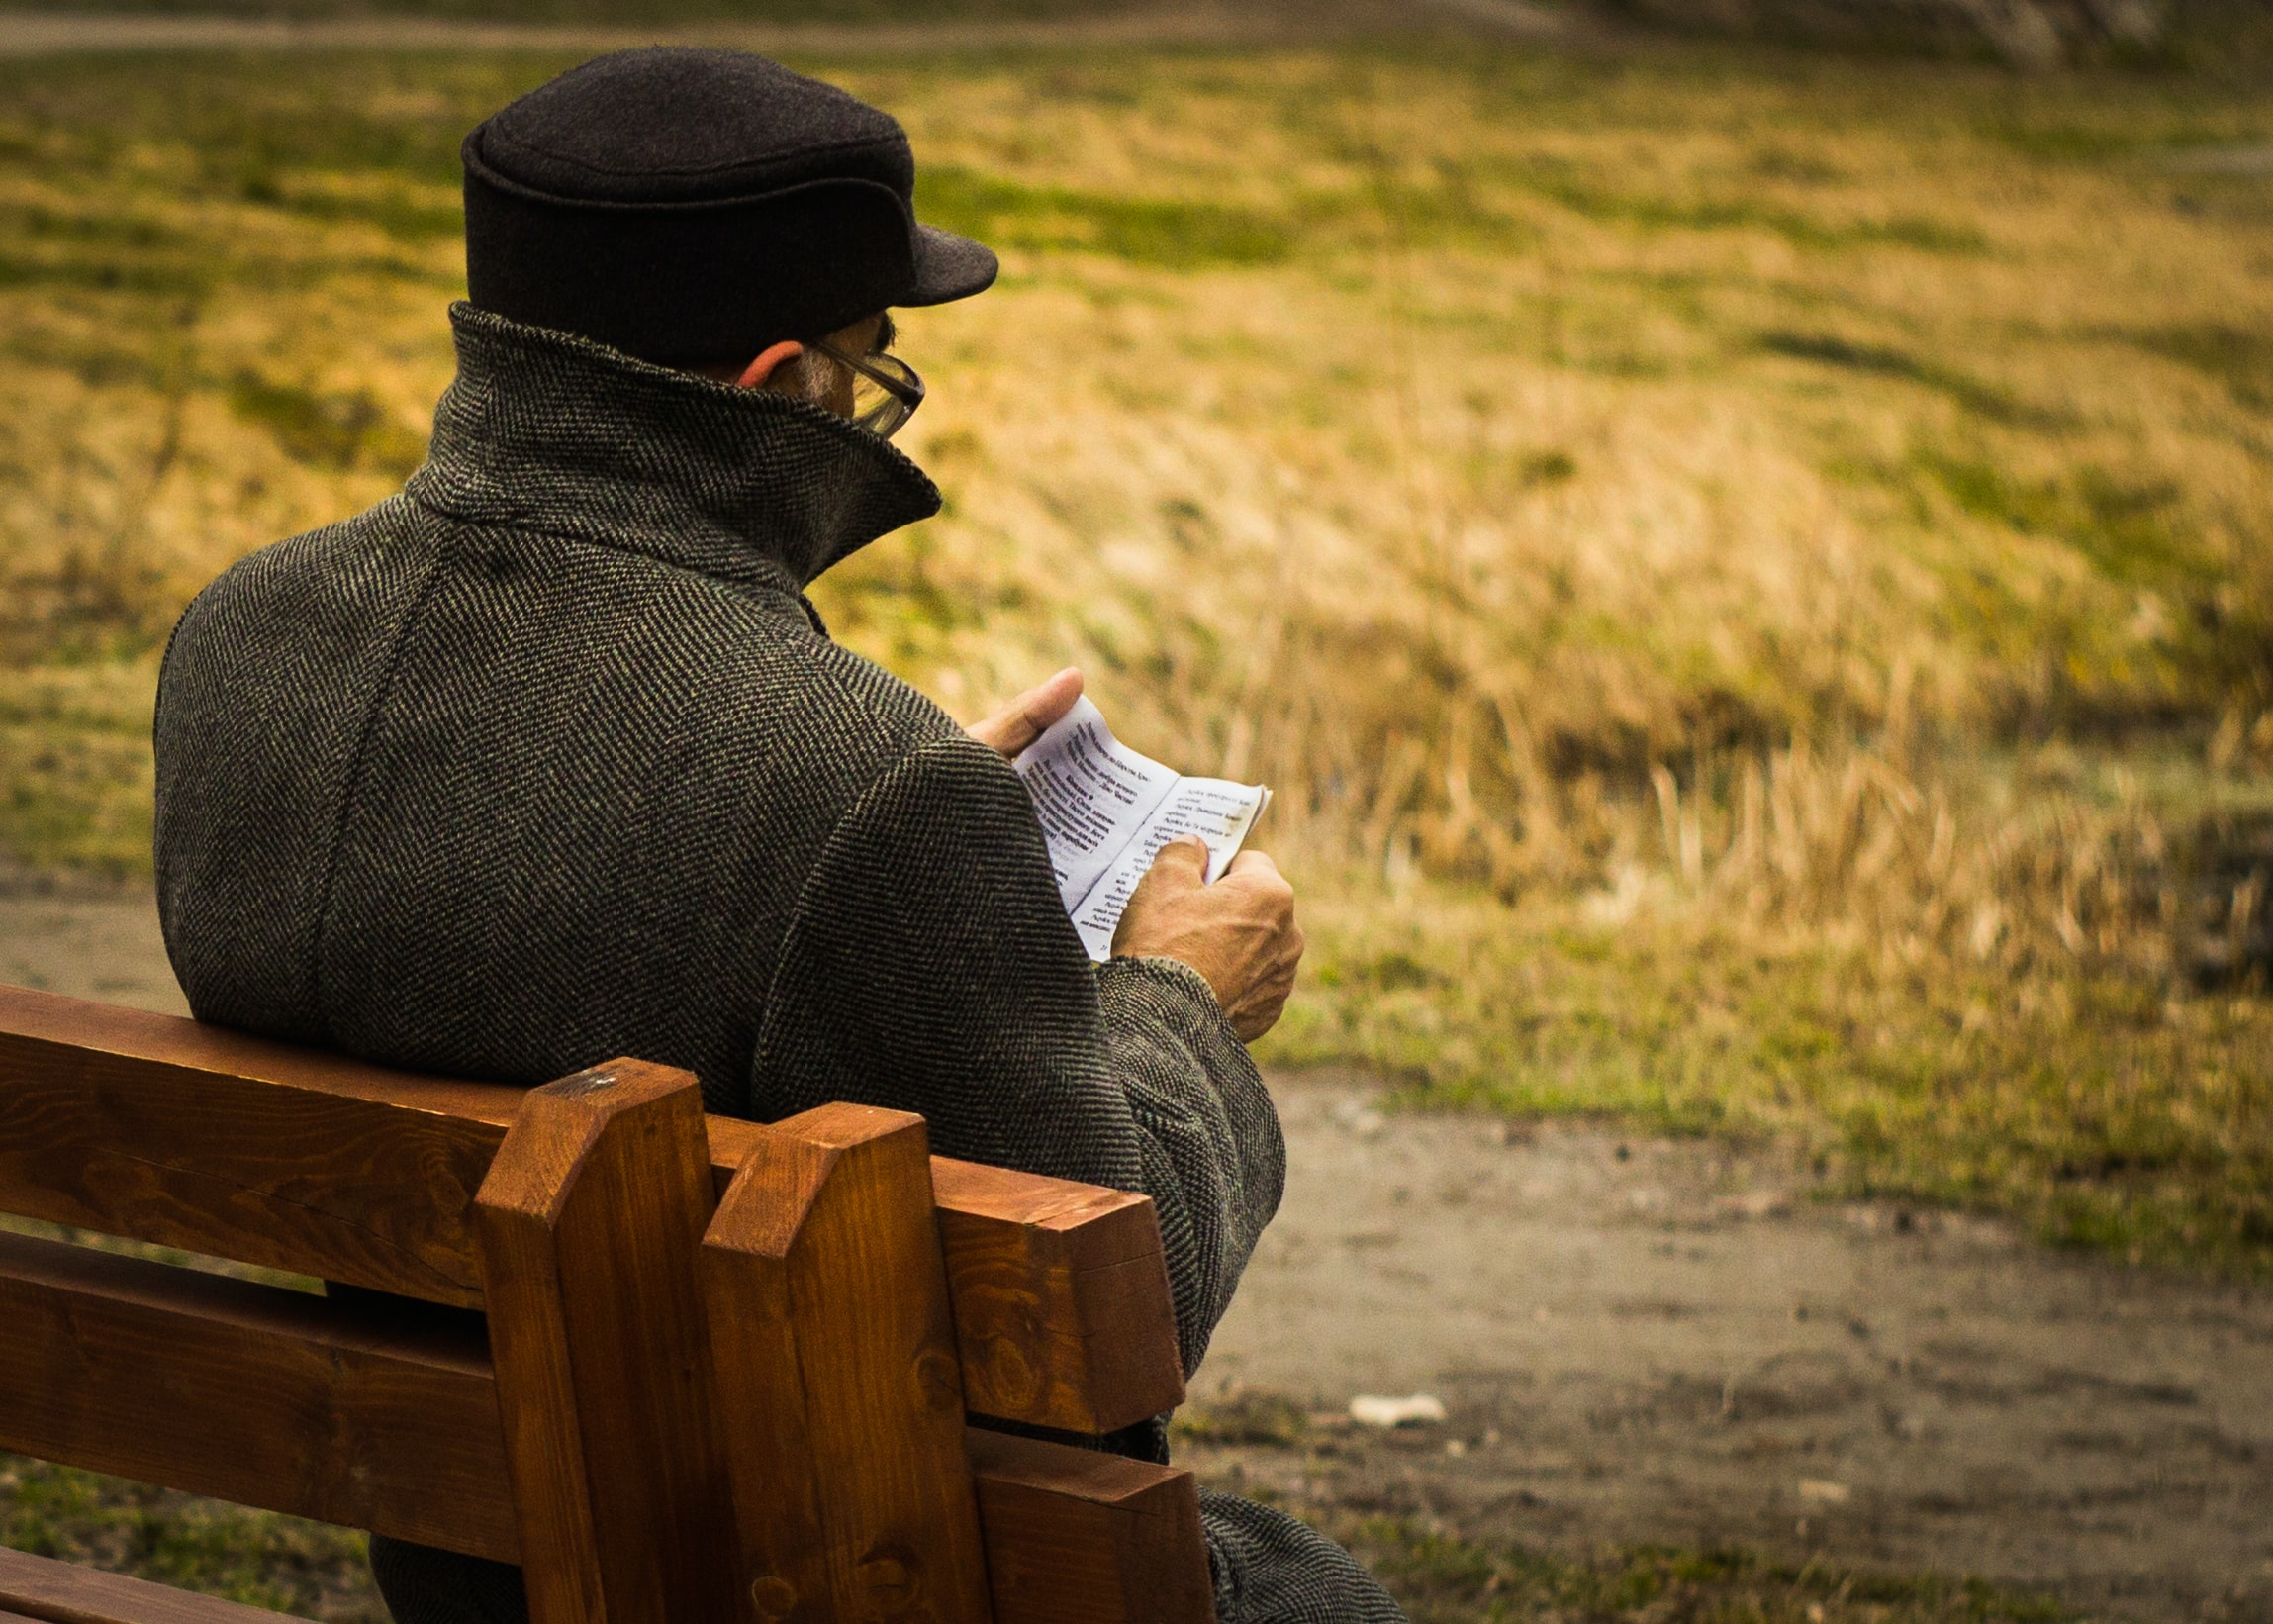 man holding paper sitting on bench